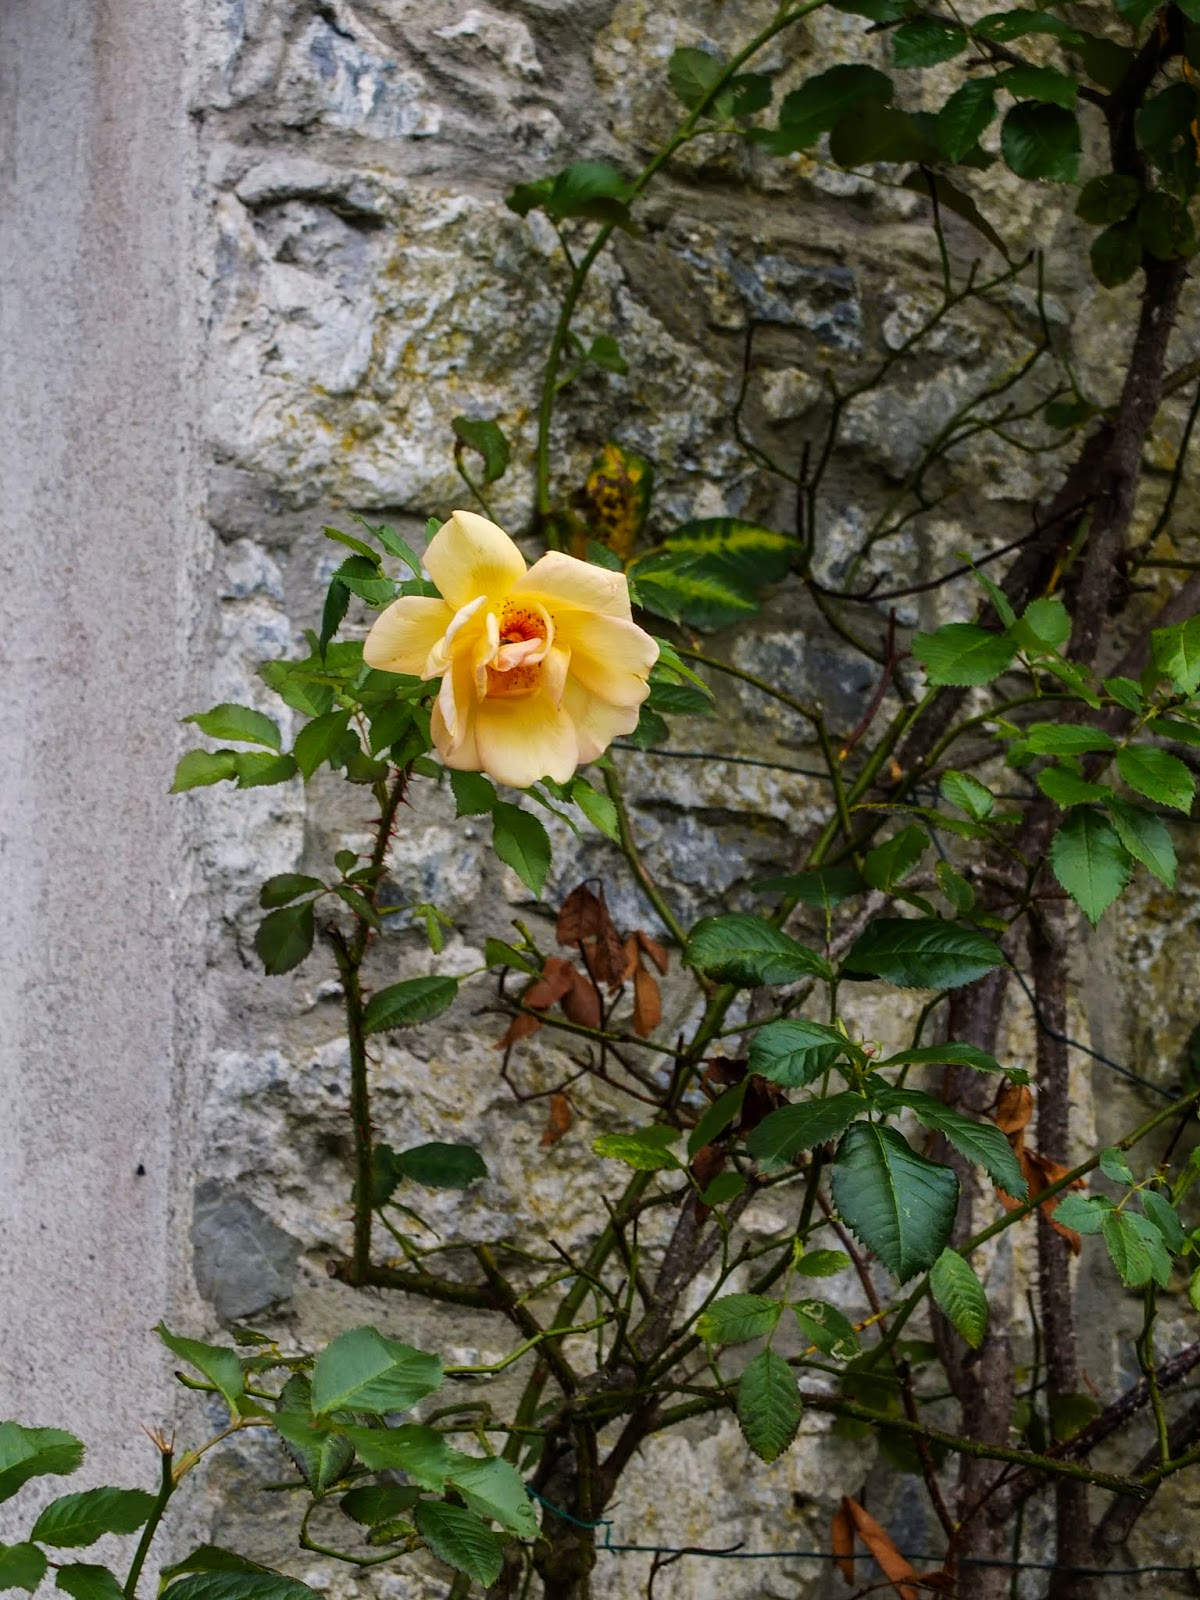 A yellow rose growing agaist a stone wall on Cahir Castle grounds.